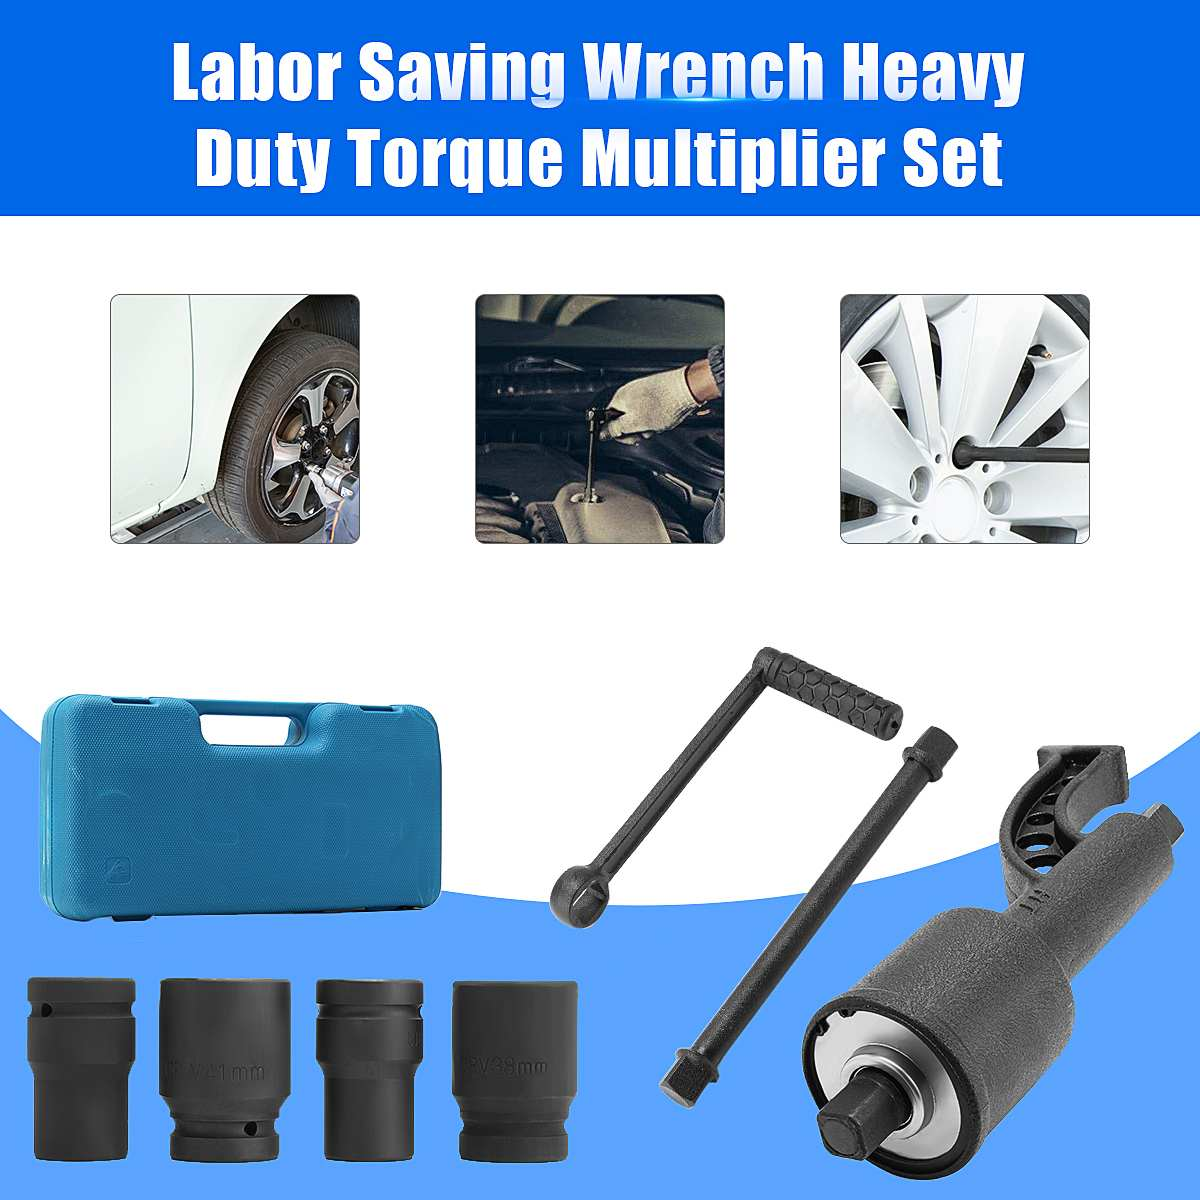 7PCS Torque Multiplier Wrench Lug Nut Lugnuts Remover Labor Saving Socket Tire Tools Kit Car Wash Maintenance Engine Care